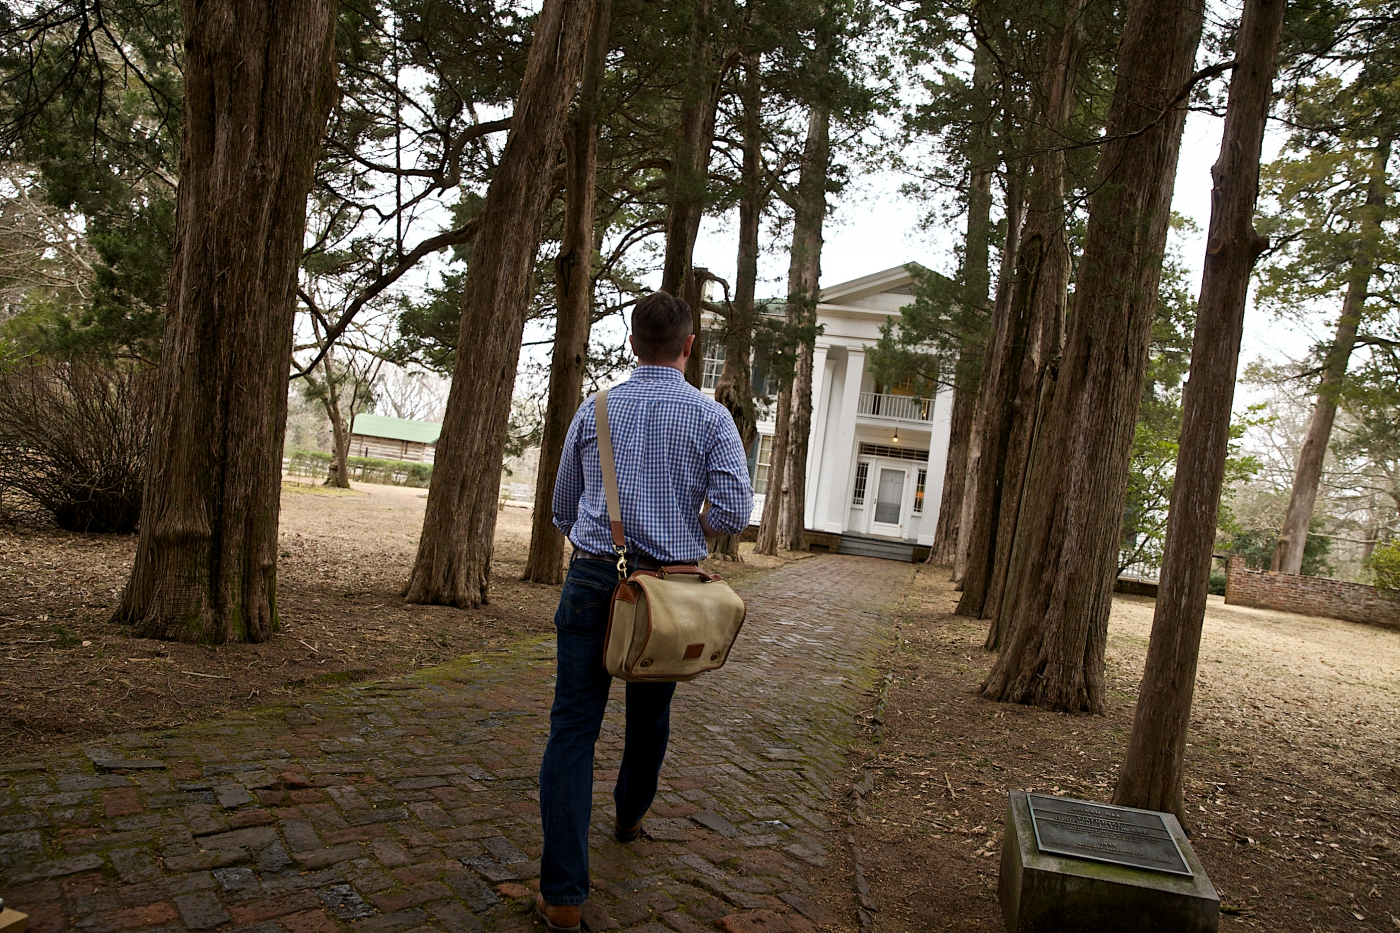 William Faulkner loved Oxford and made it his home for many years. His house, Rowan Oak, is open to visitors year round.